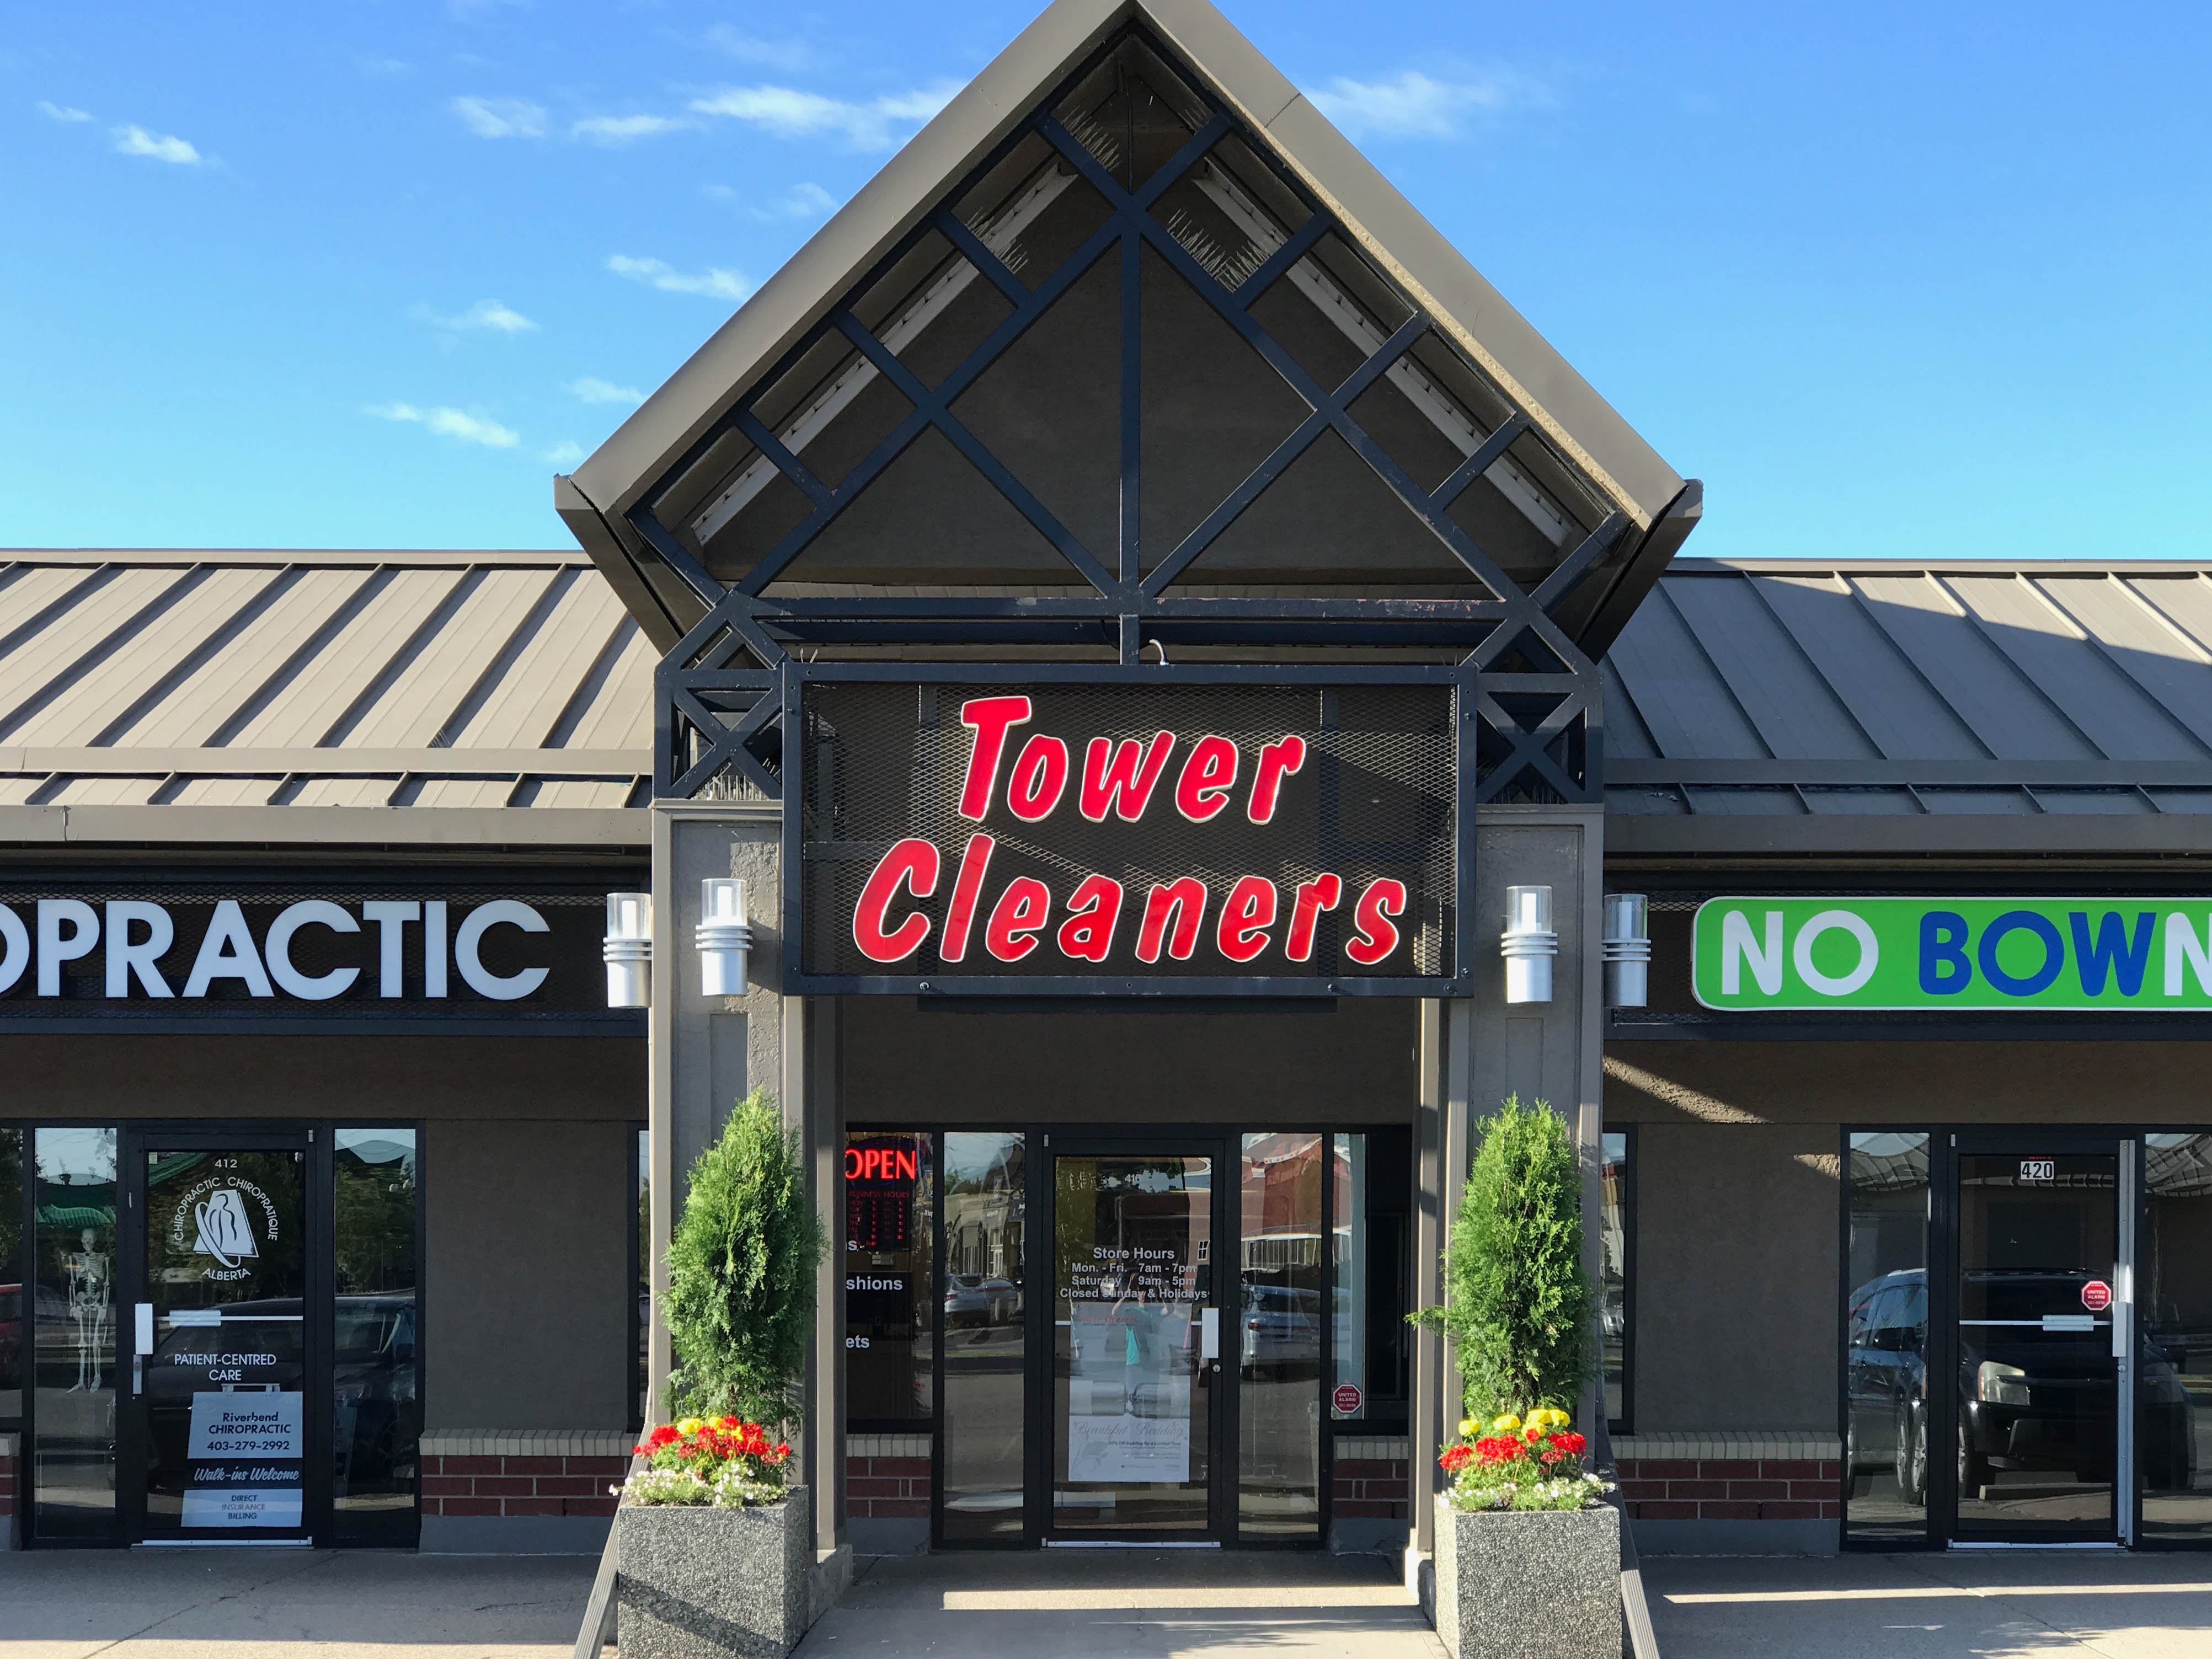 Riverbend Tower Cleaners store. #428, 8338 - 18 St SE, Calgary, Alberta, (403) 279-5185